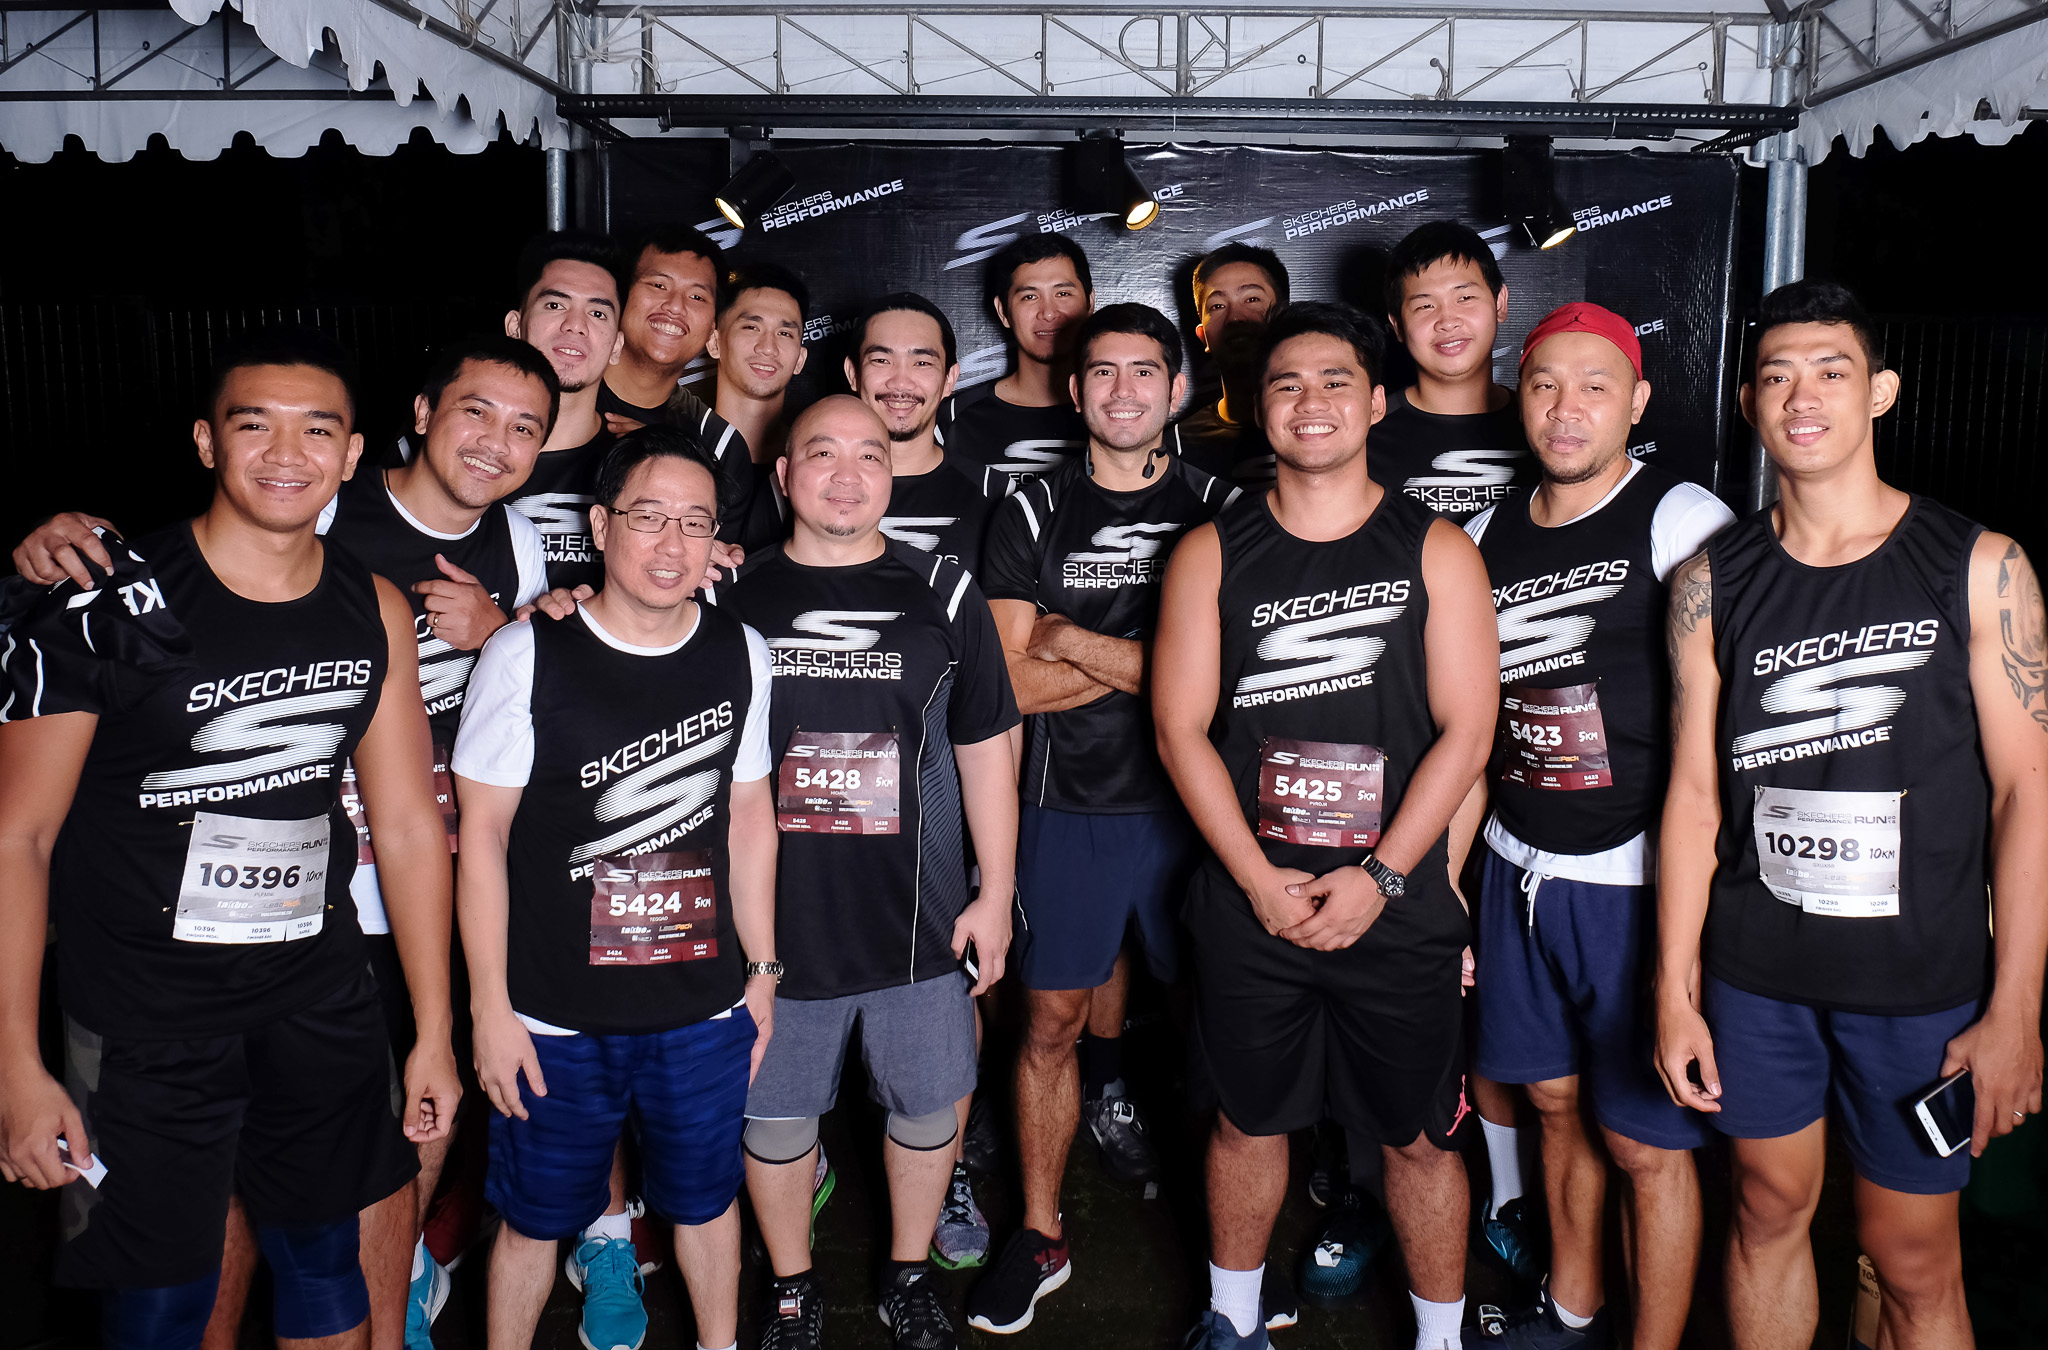 Gerald Anderson leads star-studded Skechers performance run